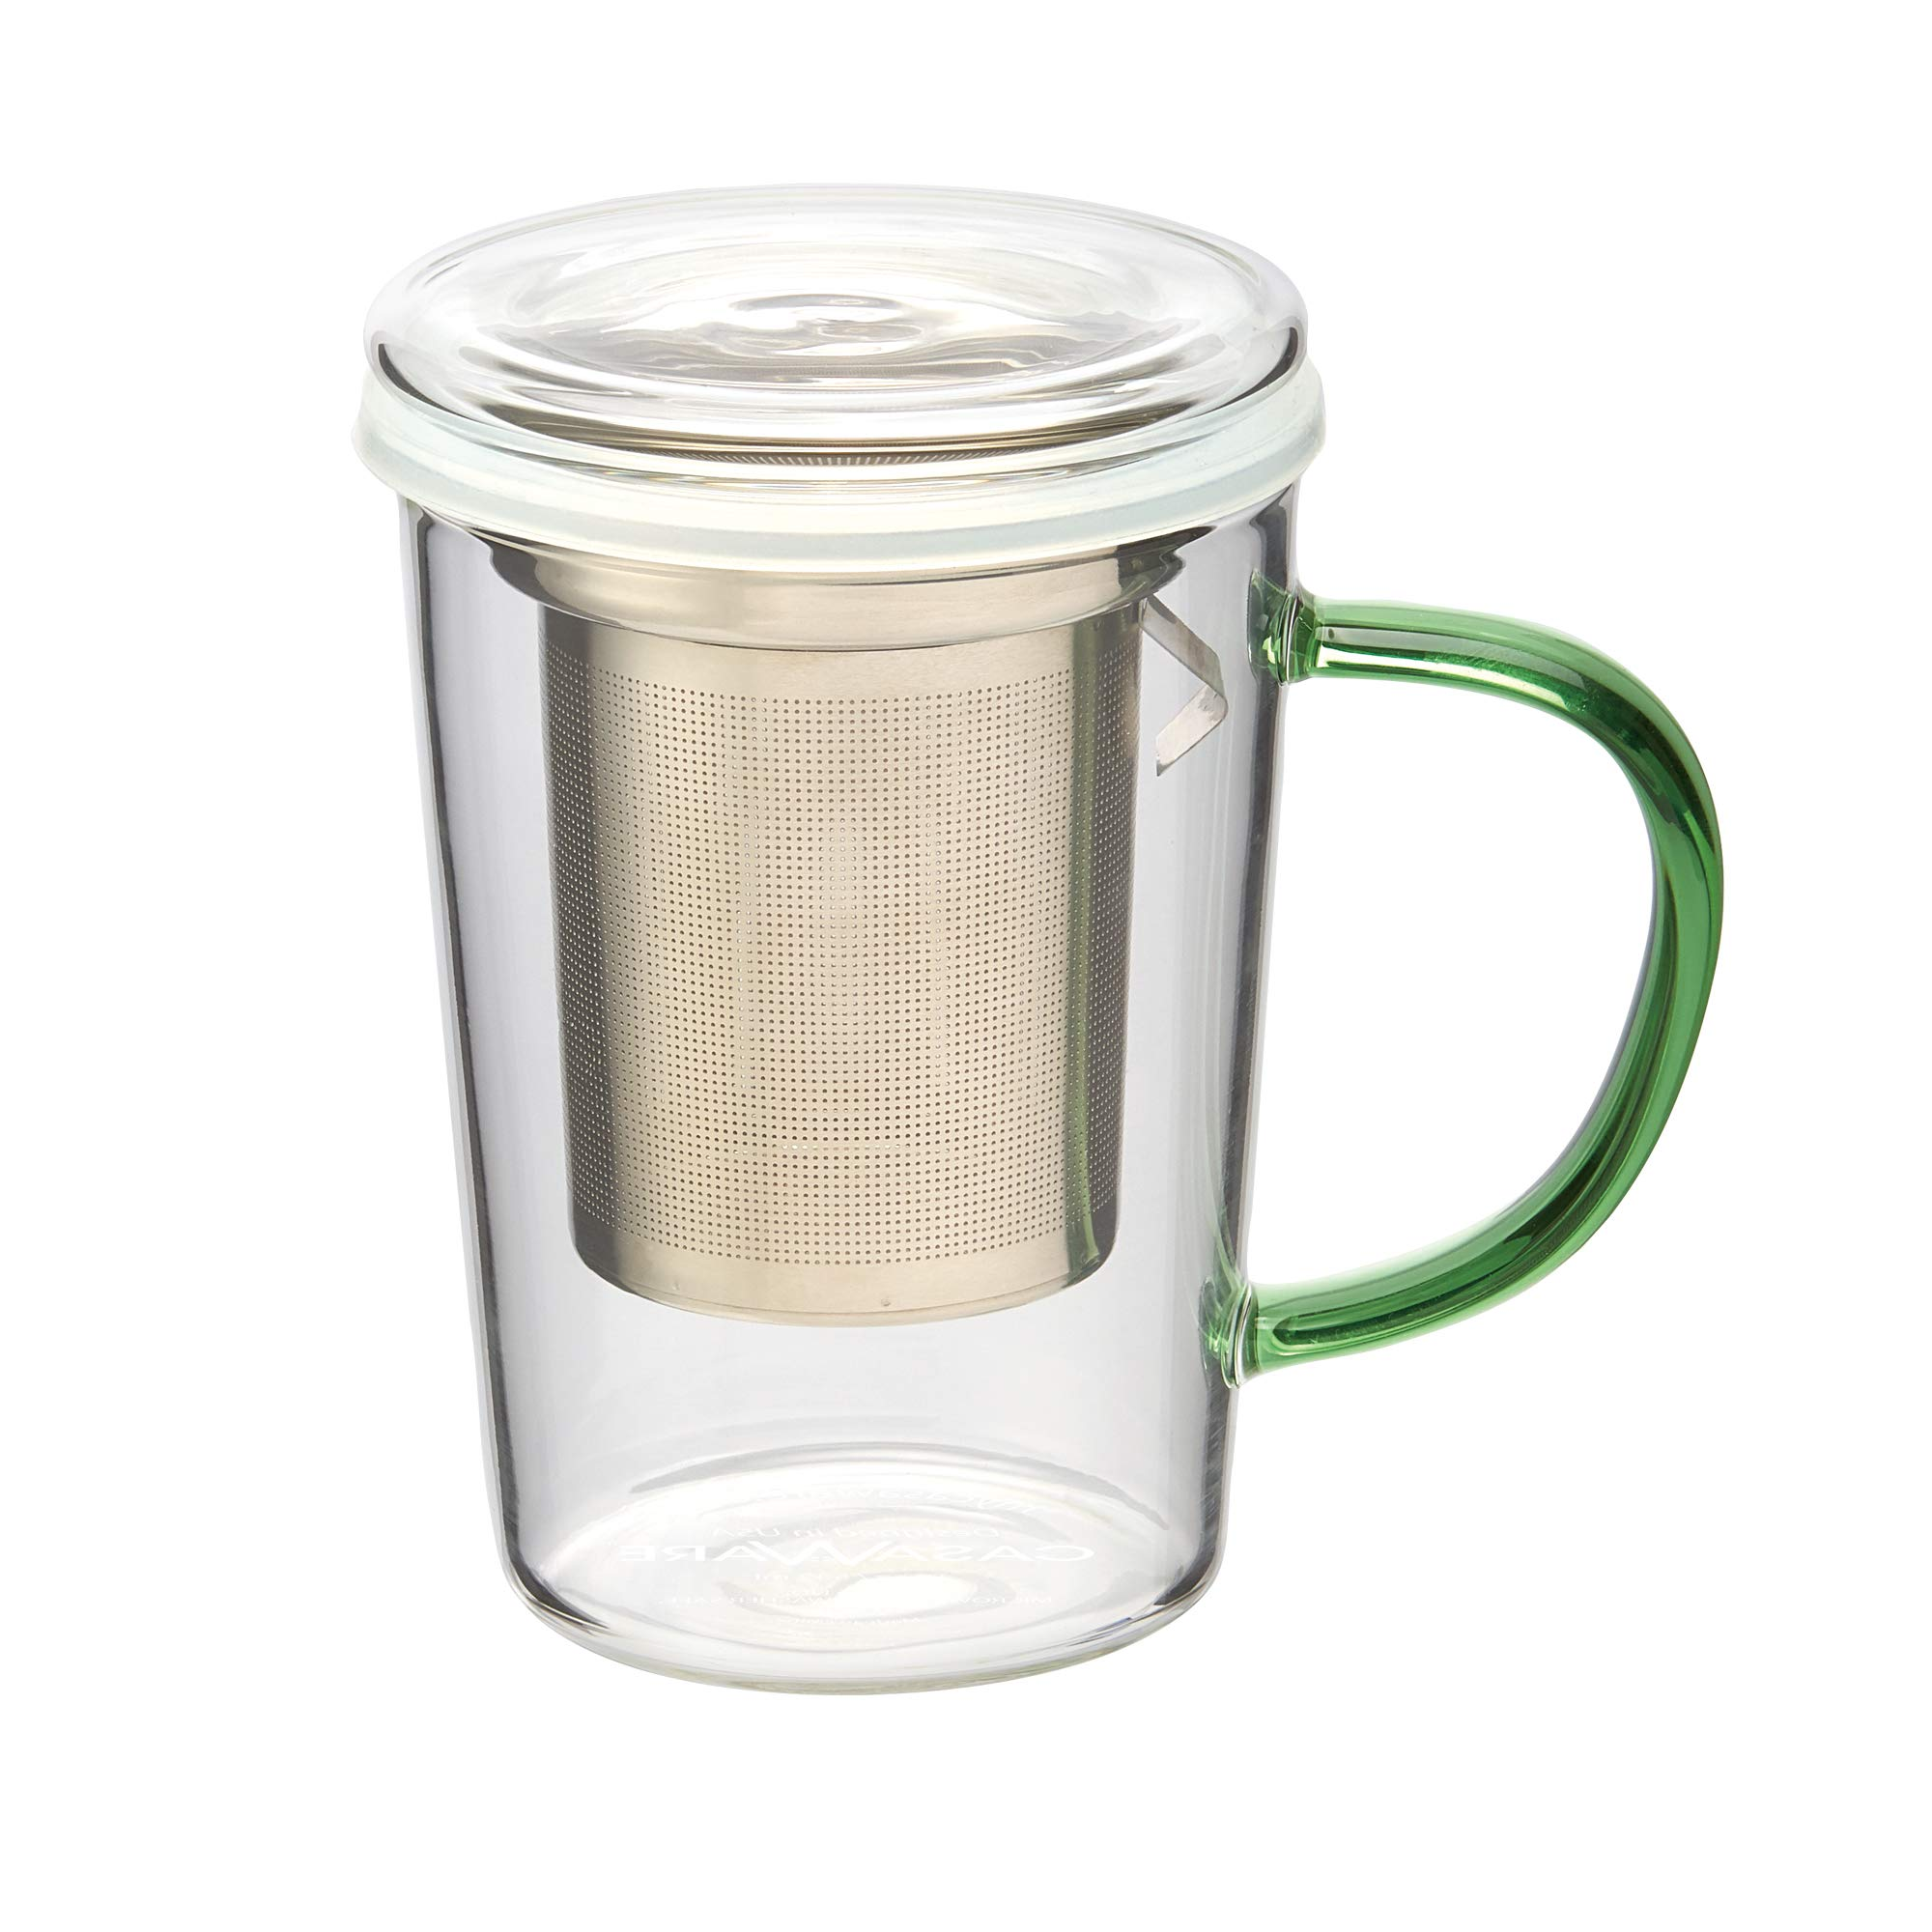 casaWare 18-Ounce Borosilicate Glass Tea Infuser Mug with Lid (Green Handle)